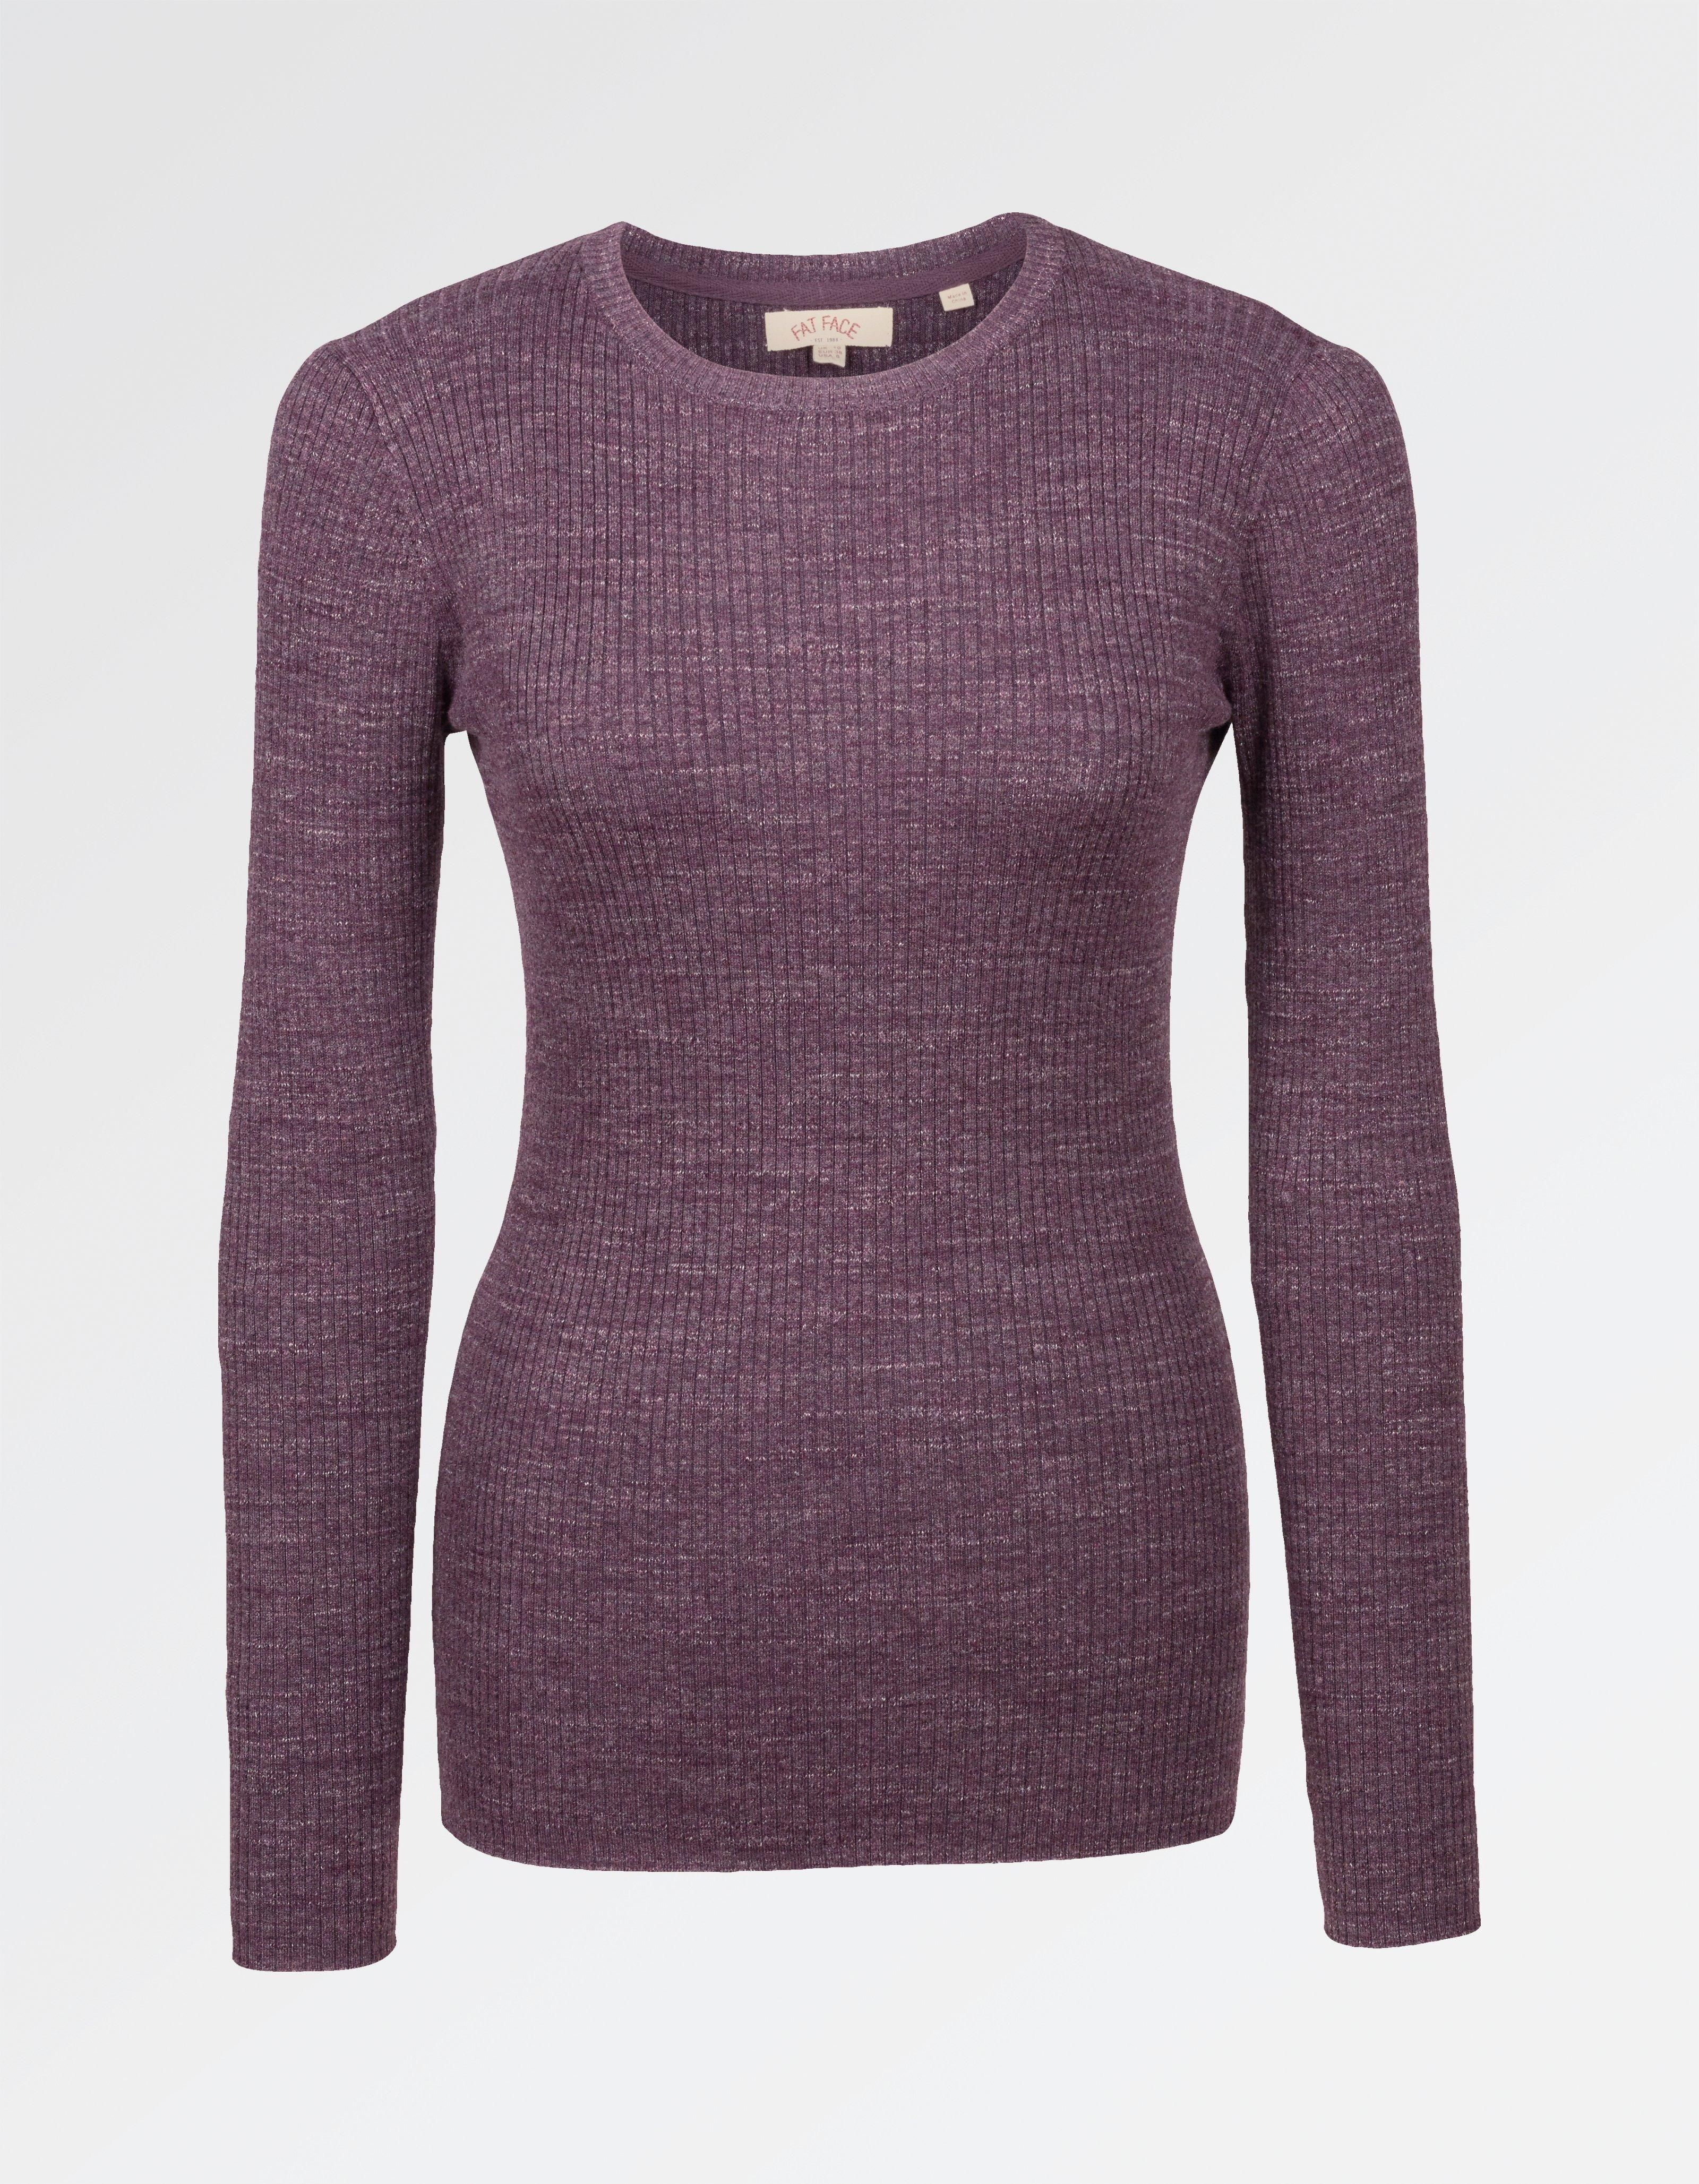 Womens Sofia Crew Jumper Fat Face Sale Footaction Discount Purchase 2018 Unisex vemYeYcI